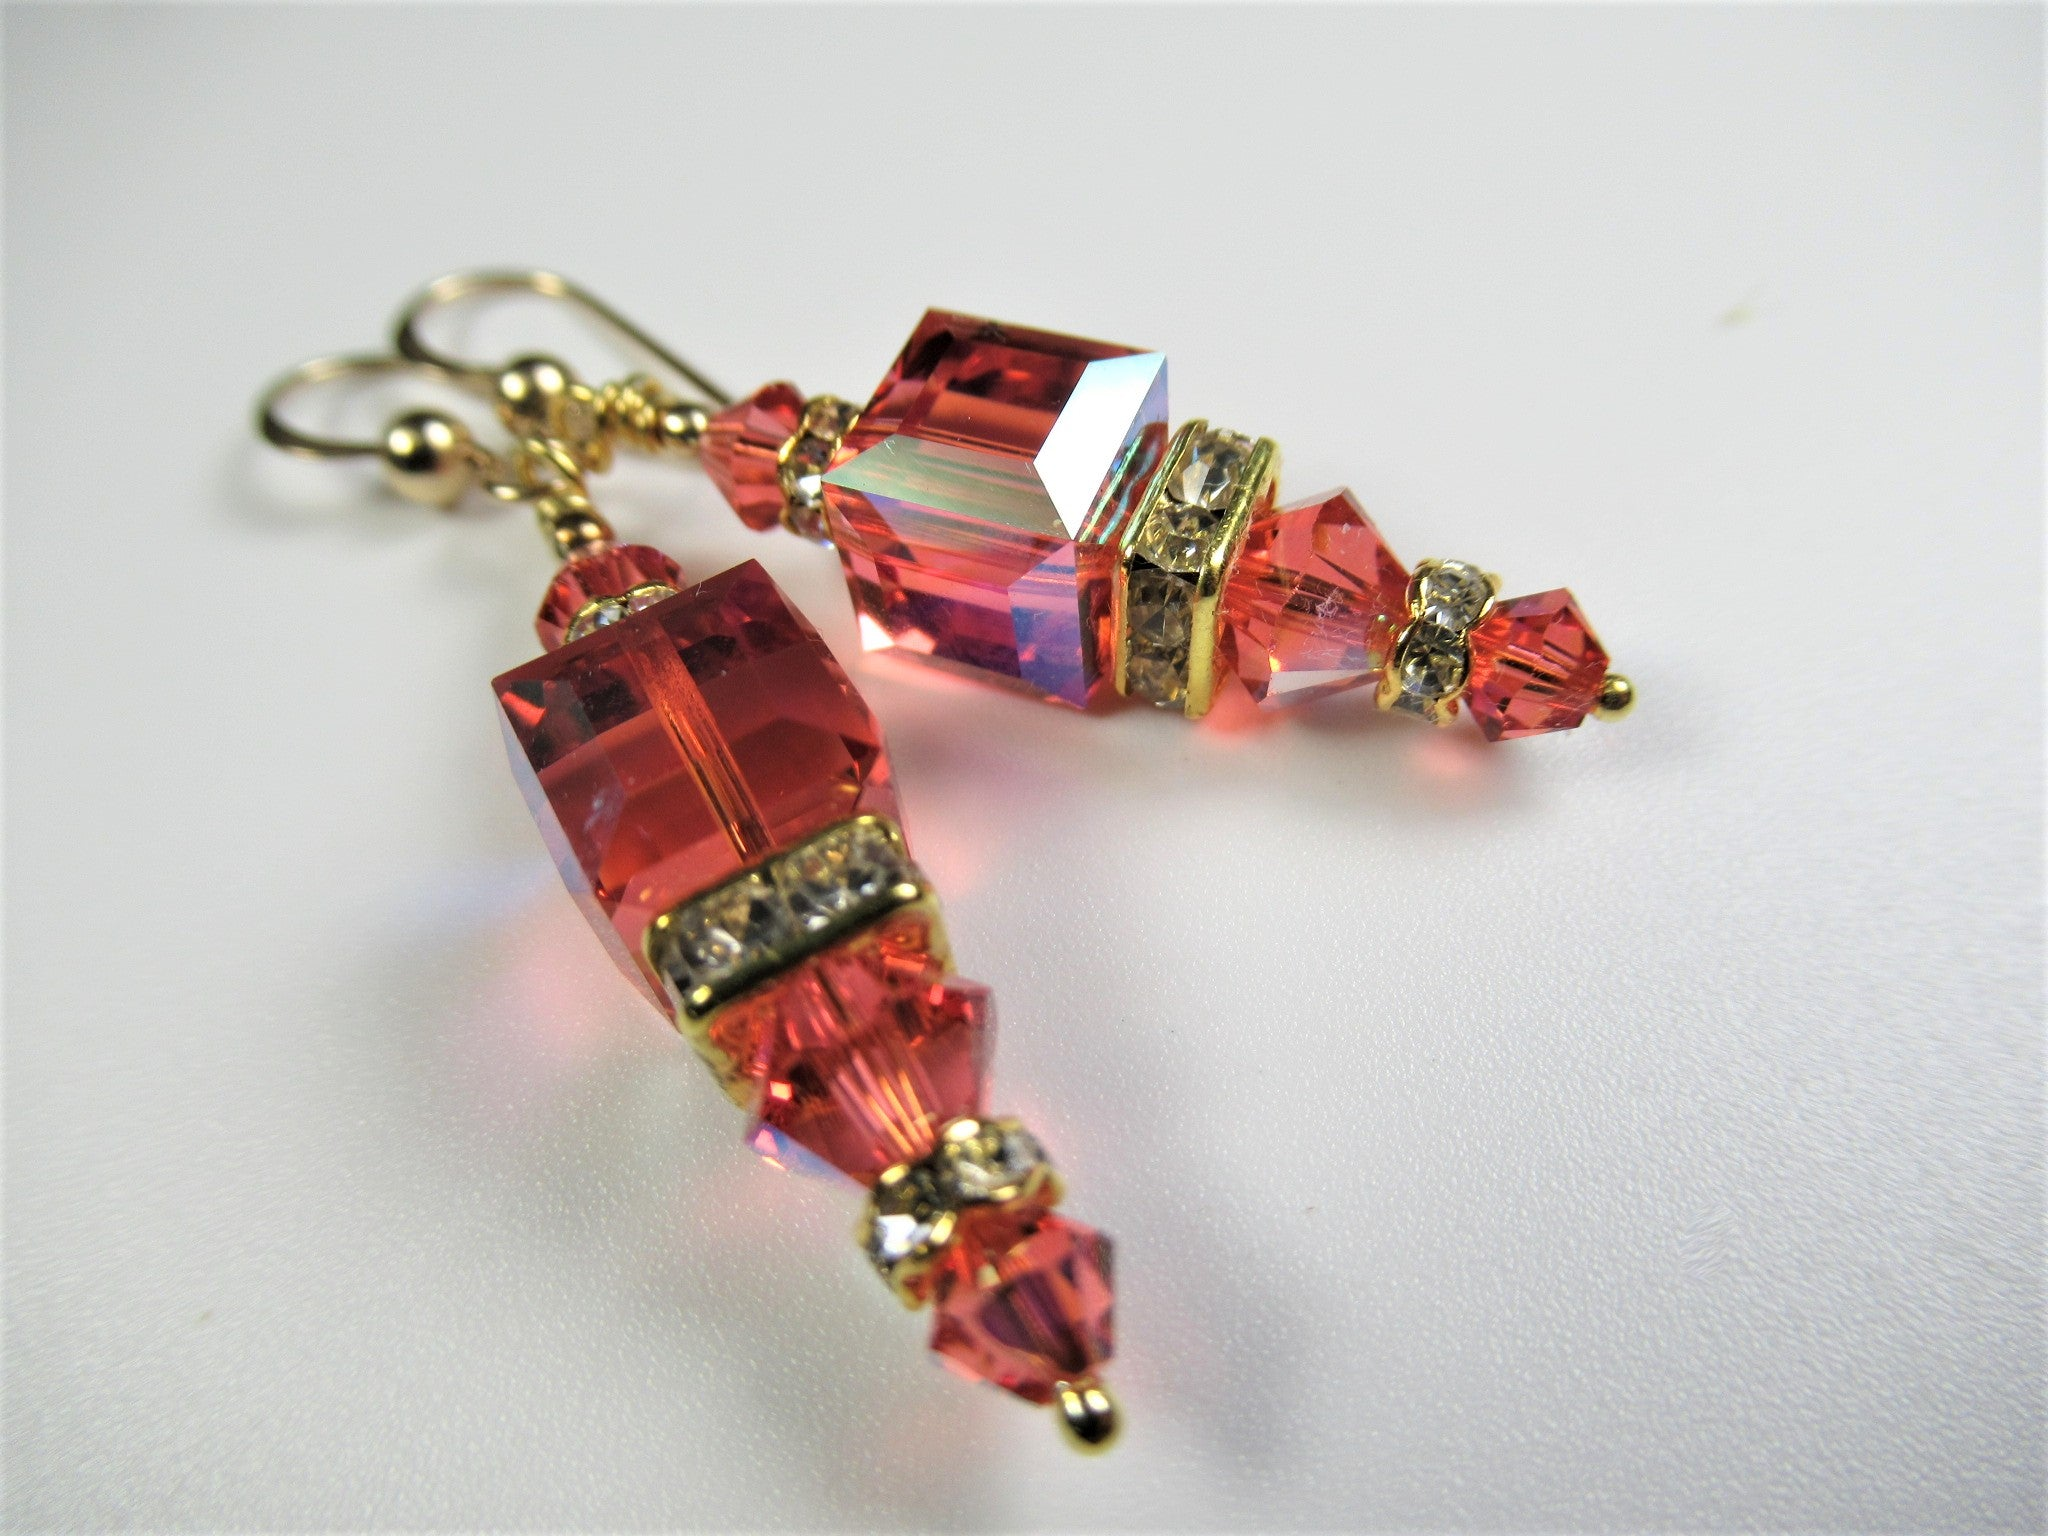 Coral Petite Geometric Style Cube Earrings in Swarovski Crystal Padparascha AB on 14k Gold Fill Earring Wires - Odyssey Creations